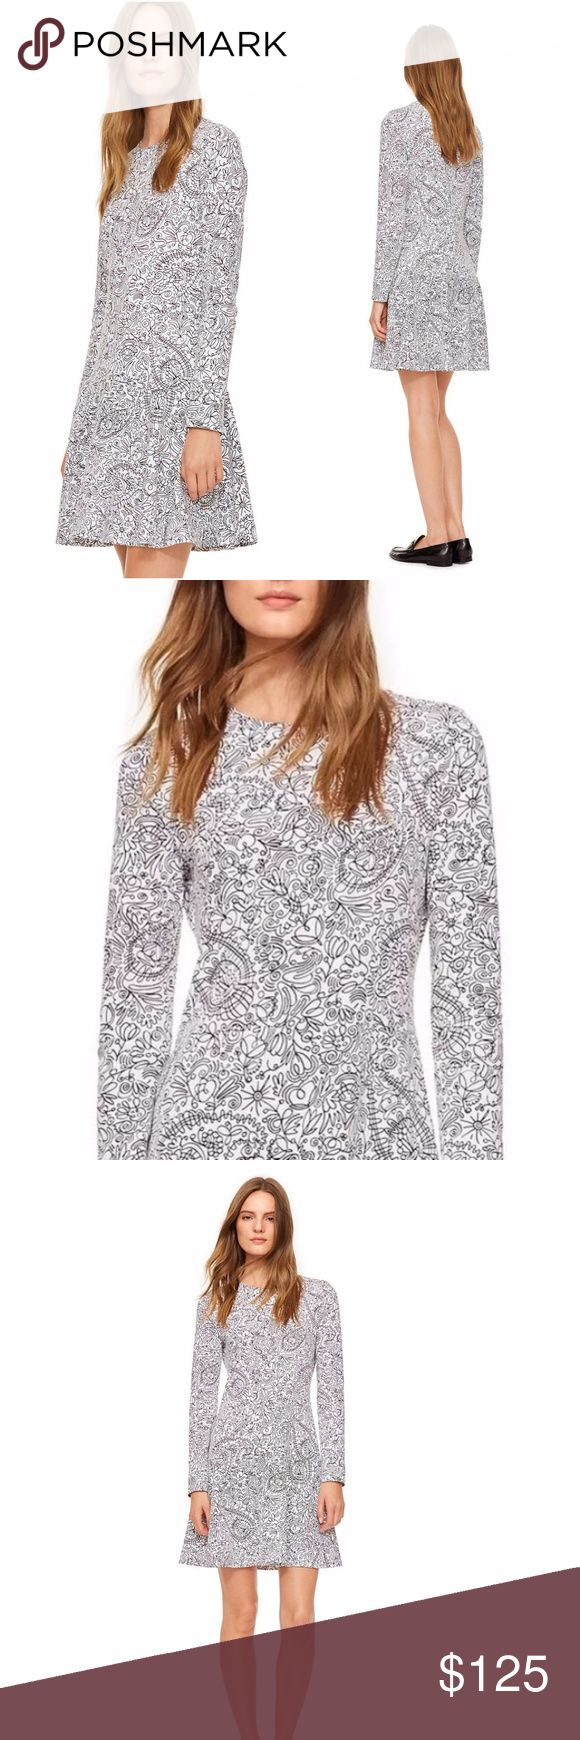 TORY BURCH Scribble Doodle Crewneck Dress A playful take on paisley: Our Crewneck Dress is detailed with a freehand scribble print. It brings graphic polish to the soft pima cotton — and channels the season's Sixties influence into a modern, easy yet elegant silhouette. Detailed with a drop waist and a mid-thigh hem, it's a great day-to-evening look, as comfortable as it is chic. Pima cotton. Crewneck. Relaxed fit. Long sleeves. Tory Burch Dresses